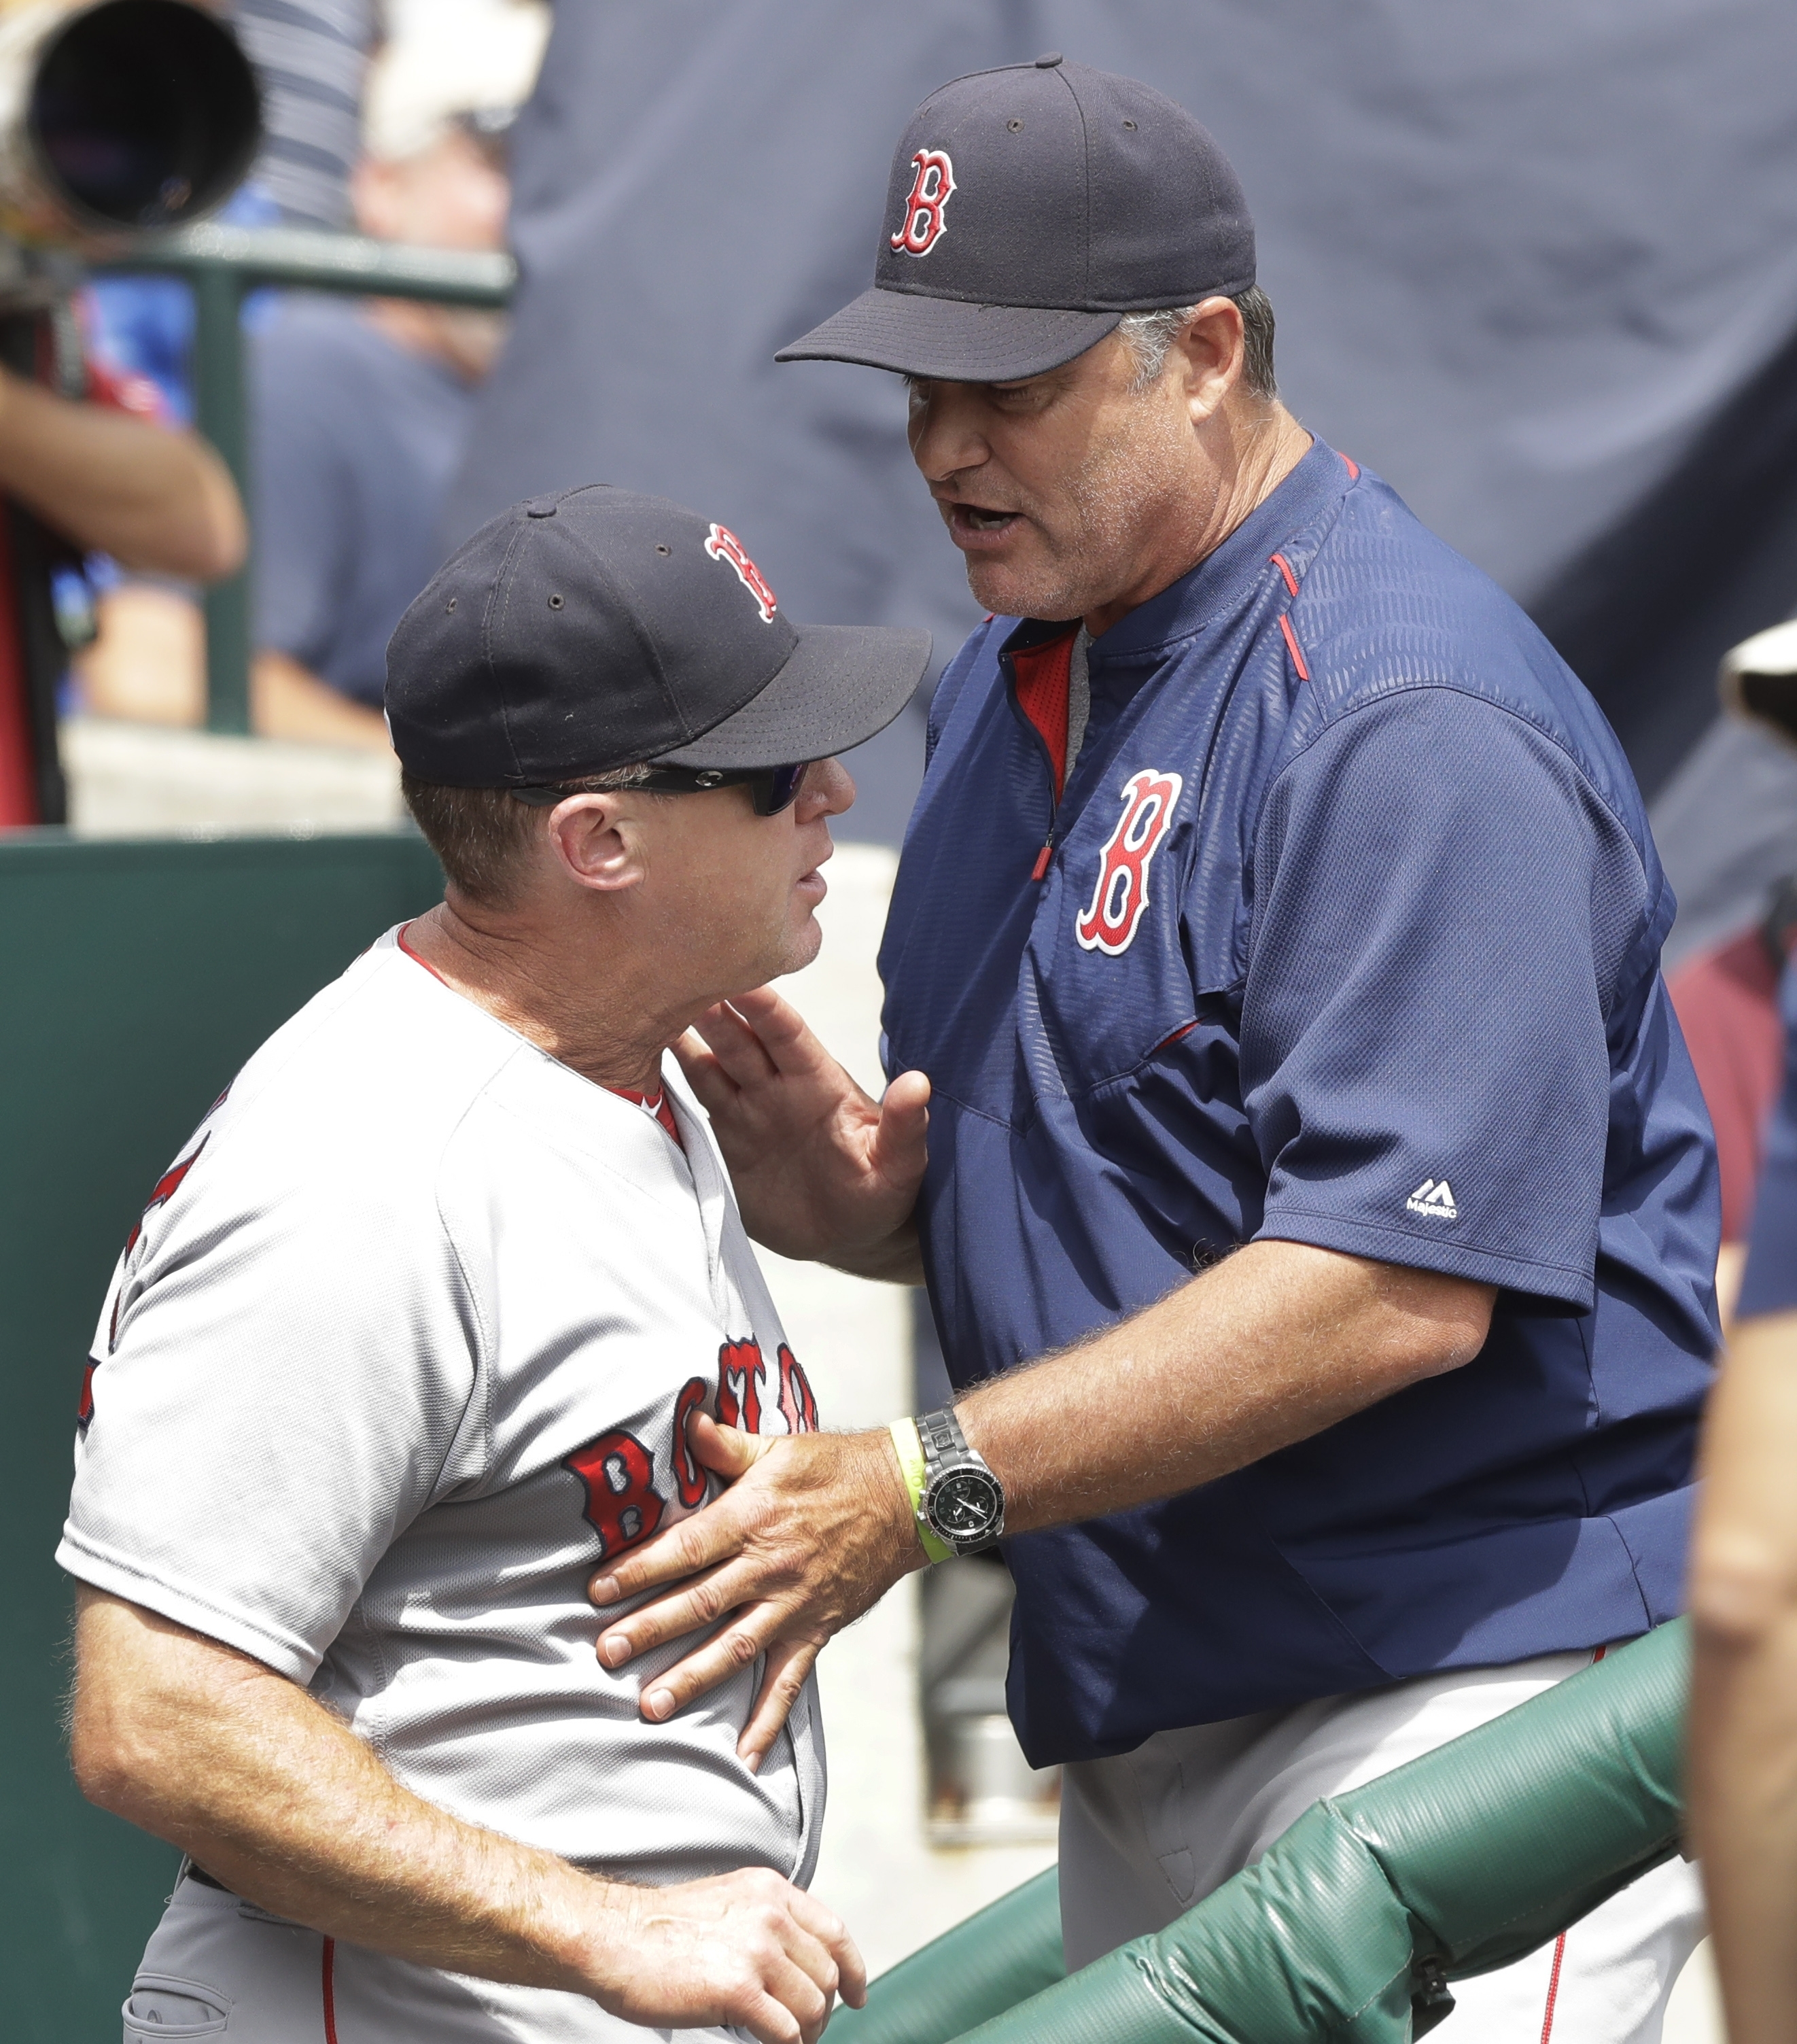 Boston Red Sox manager John Farrell, right, holds back third base coach Brian Butterfield in the dugout after Butterfield was ejected during the second inning of a baseball game against the Detroit Tigers, Thursday, Aug. 18, 2016, in Detroit. (AP Photo/Ca